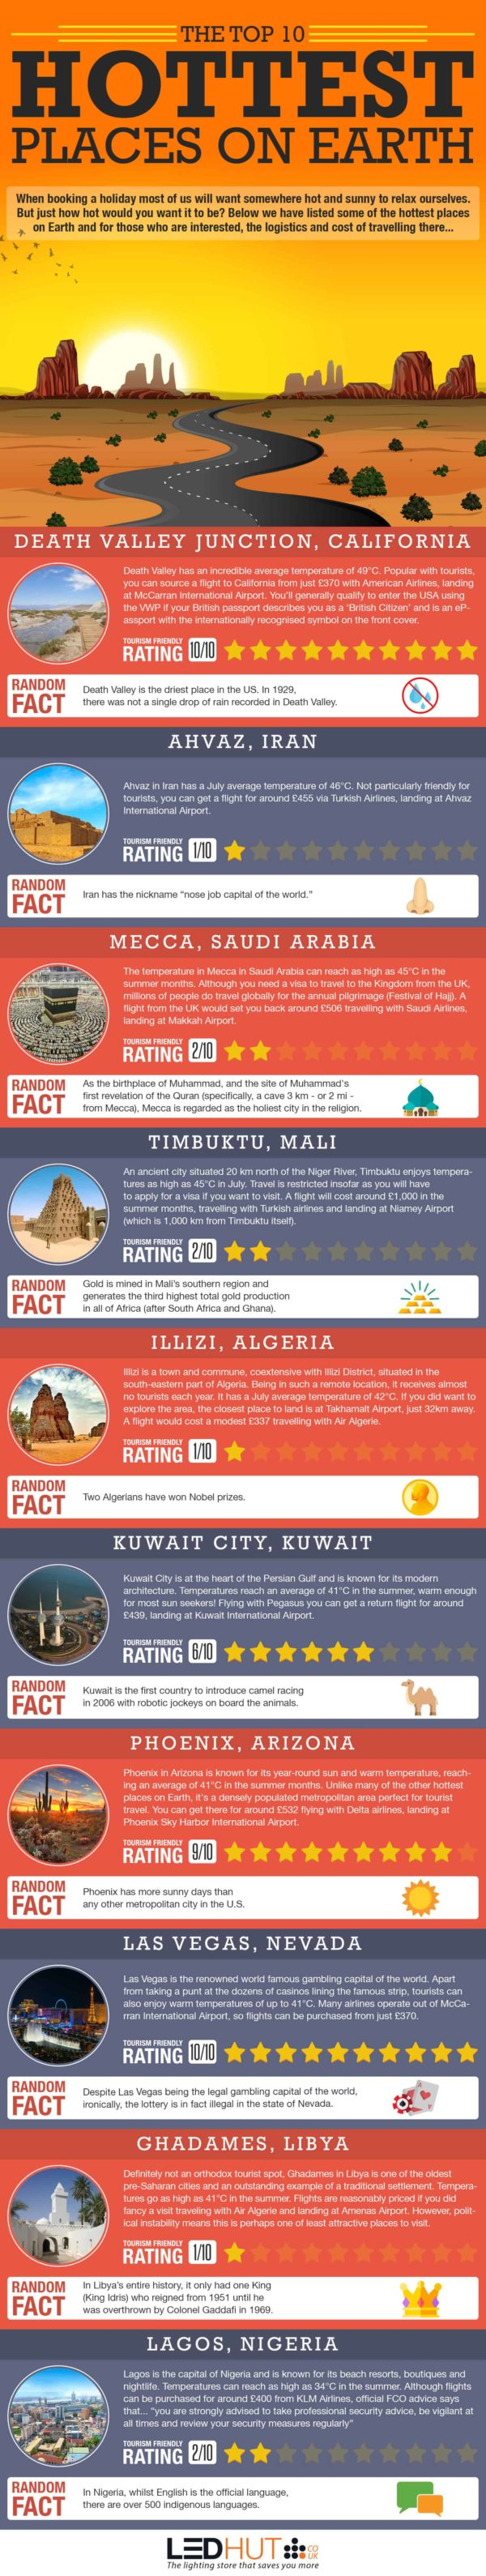 The top 10 hottest places on Earth